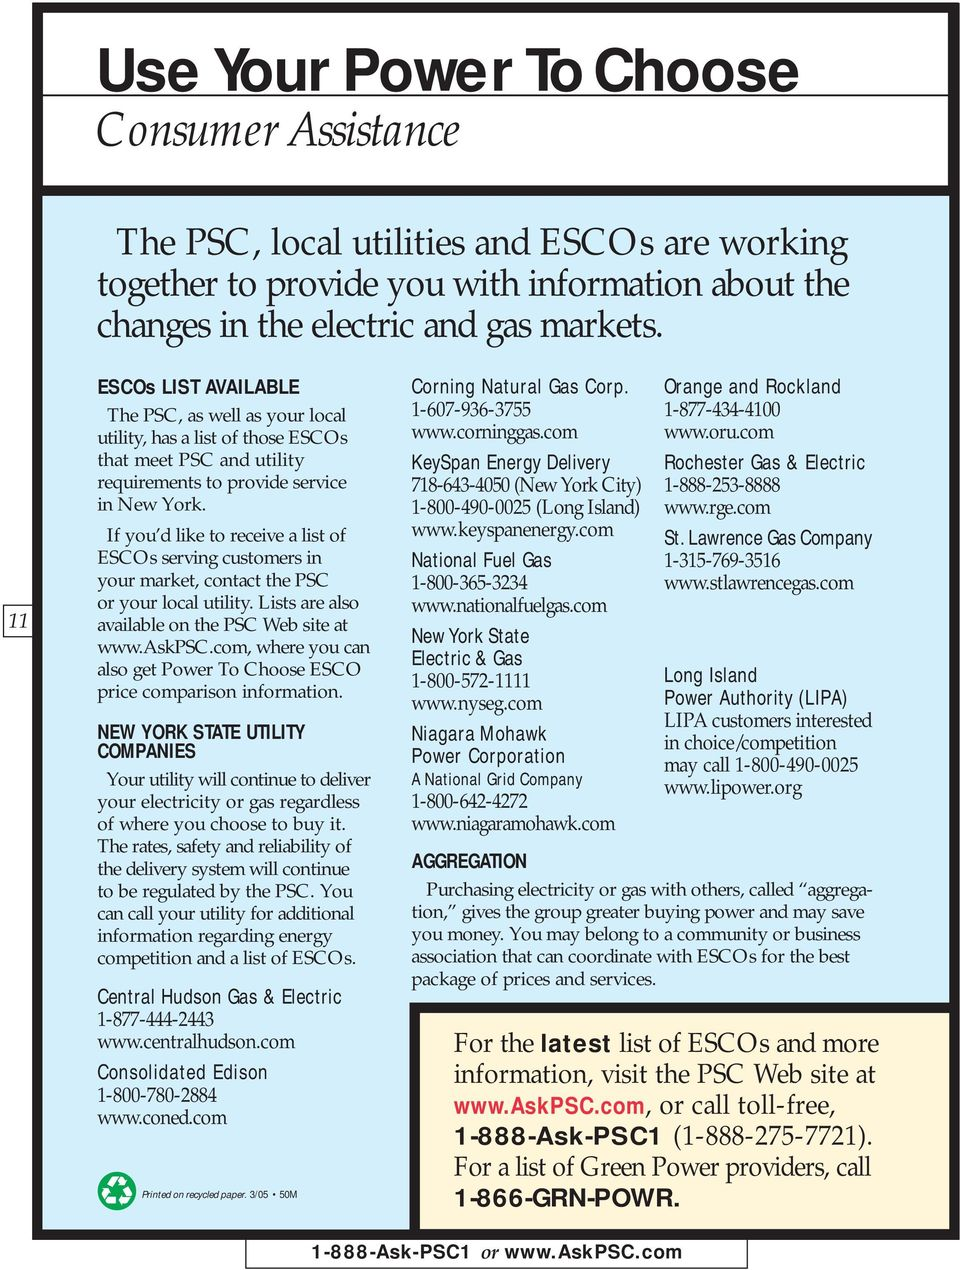 If you d like to receive a list of ESCOs serving customers in your market, contact the PSC or your local utility. Lists are also available on the PSC Web site at www.askpsc.